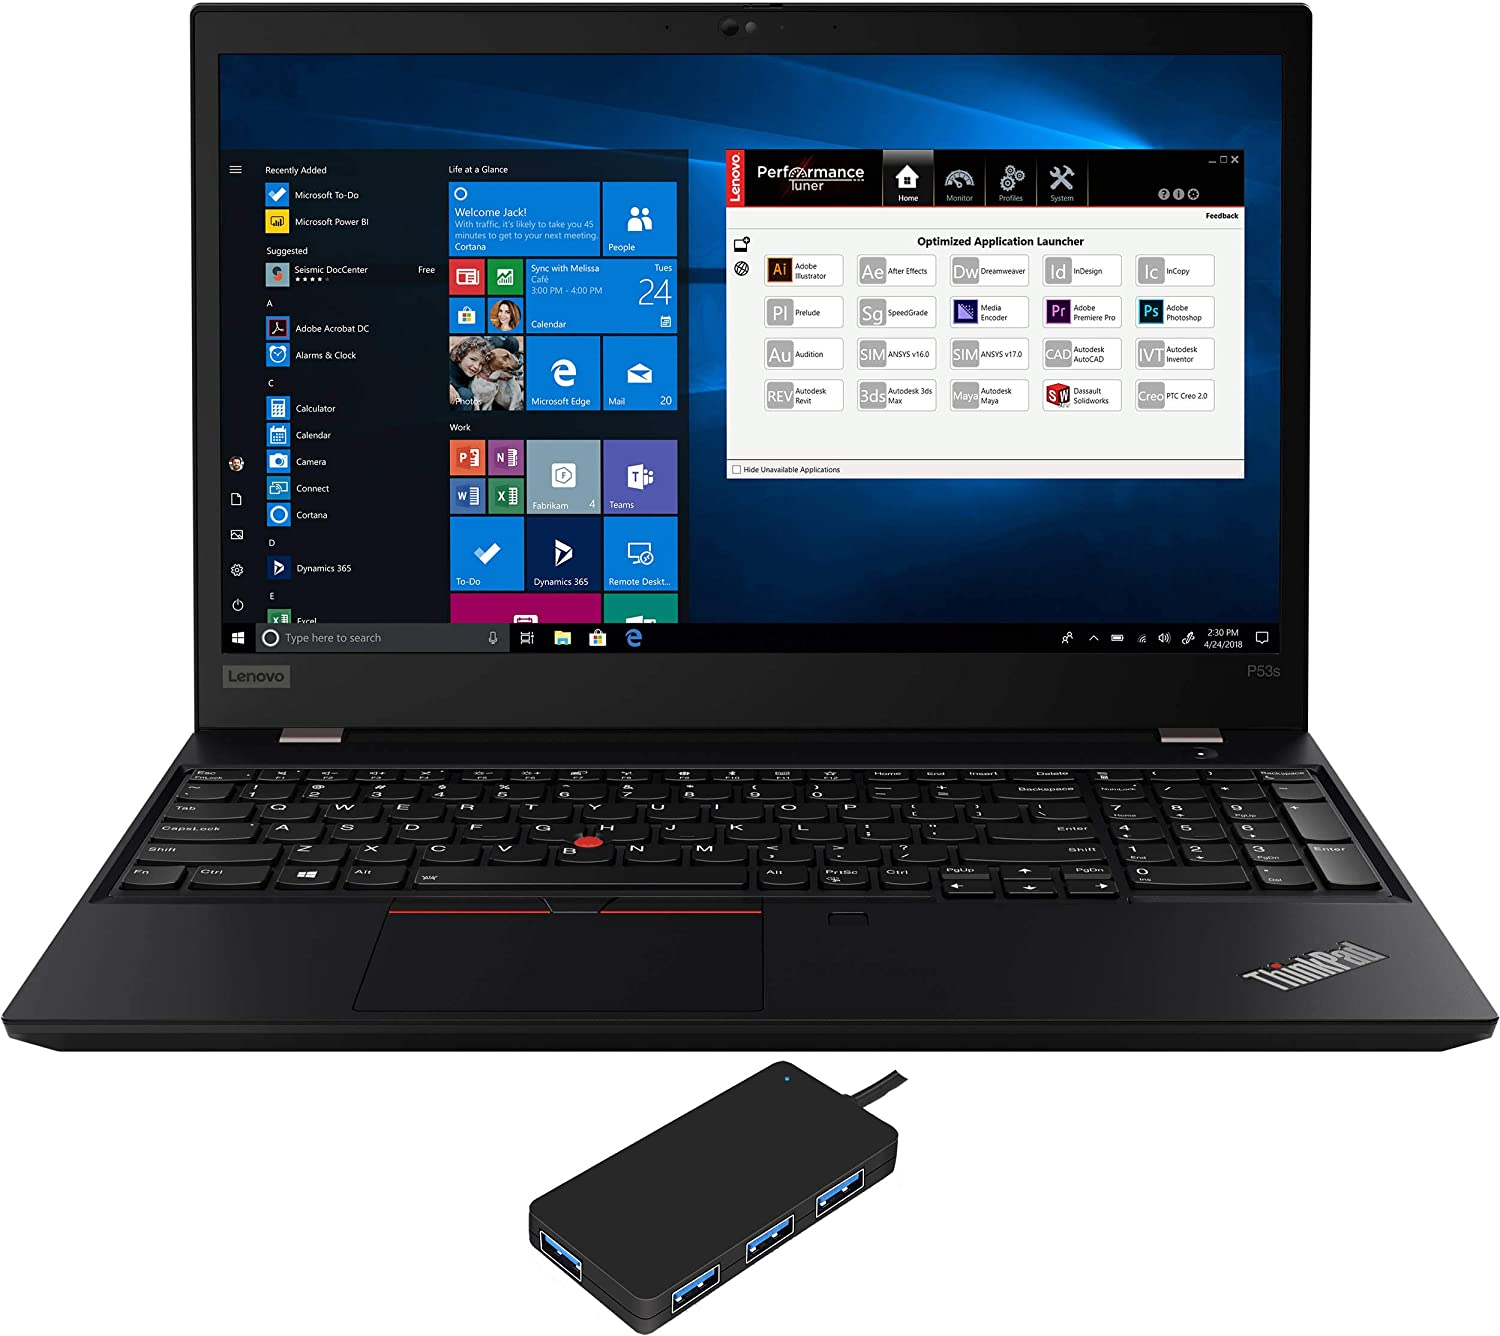 "Lenovo ThinkPad P53s Workstation Laptop (Intel i7-8565U 4-Core, 40GB RAM, 2TB PCIe SSD, Quadro P520, 15.6"" Full HD (1920x1080), Fingerprint, WiFi, Bluetooth, Webcam, Win 10 Pro) with USB3.0 Hub"